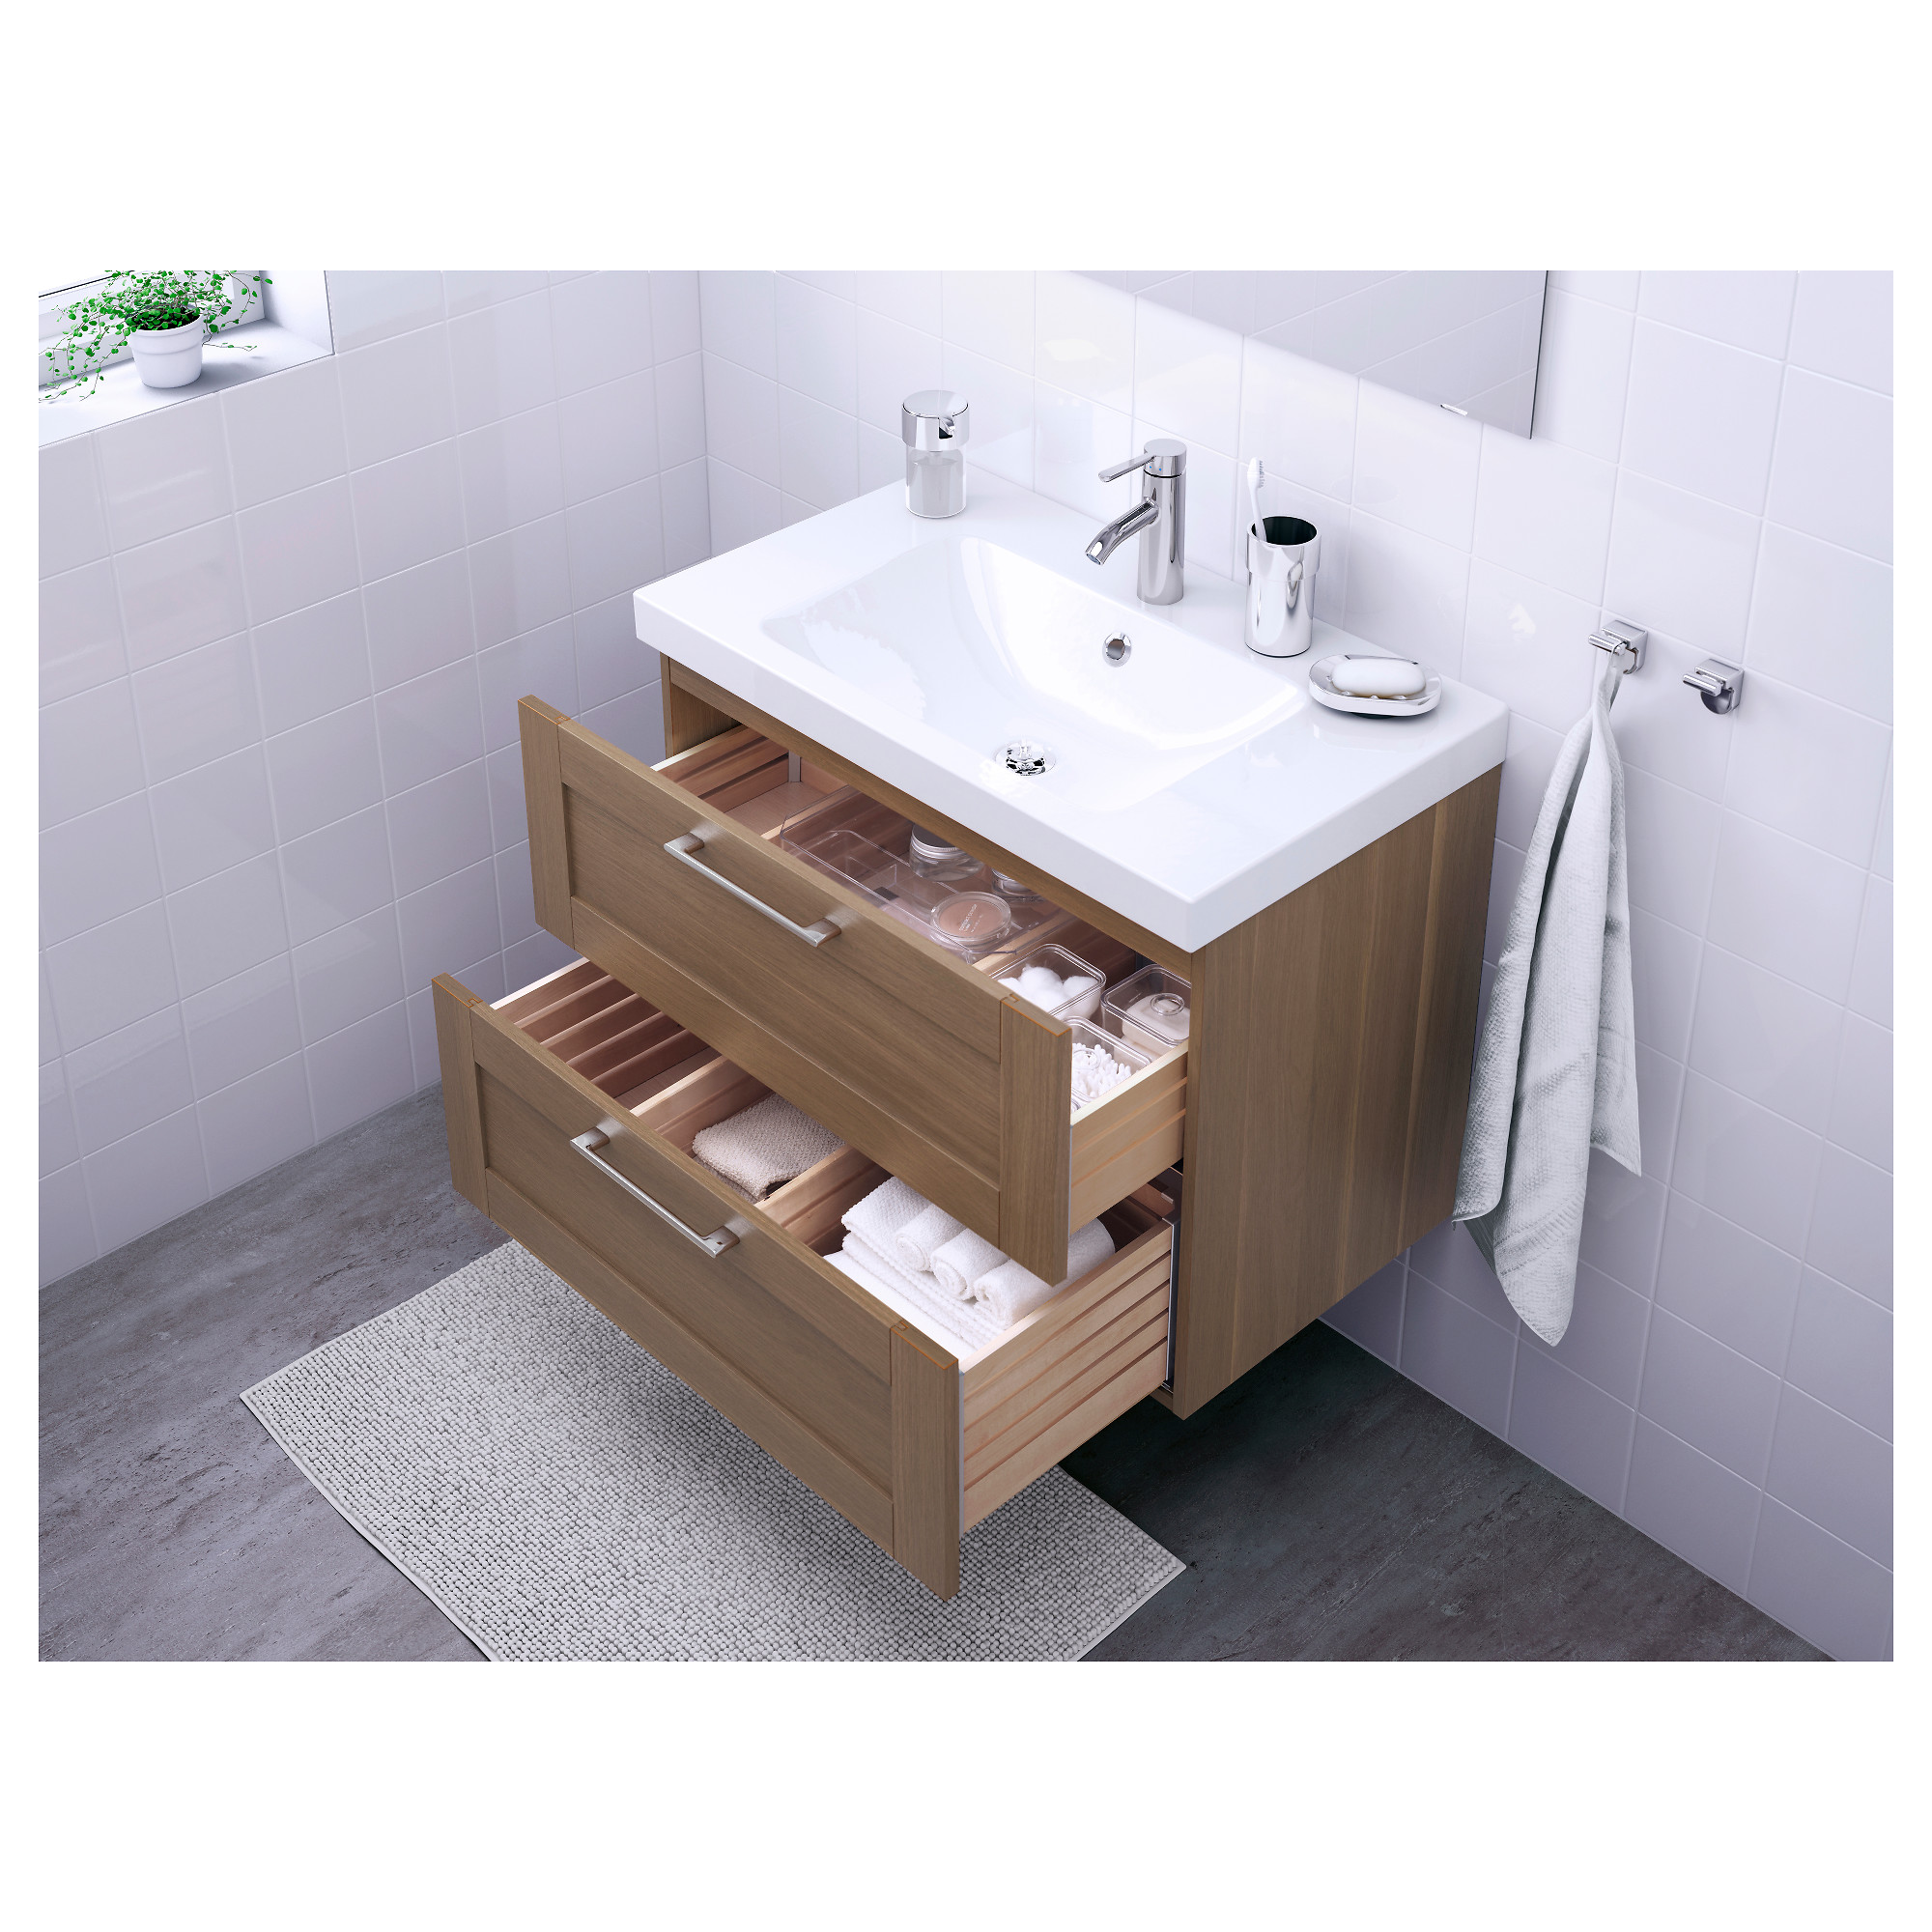 Odensvik Sink Cabinet With 2 Drawers  High Gloss White  Ikea